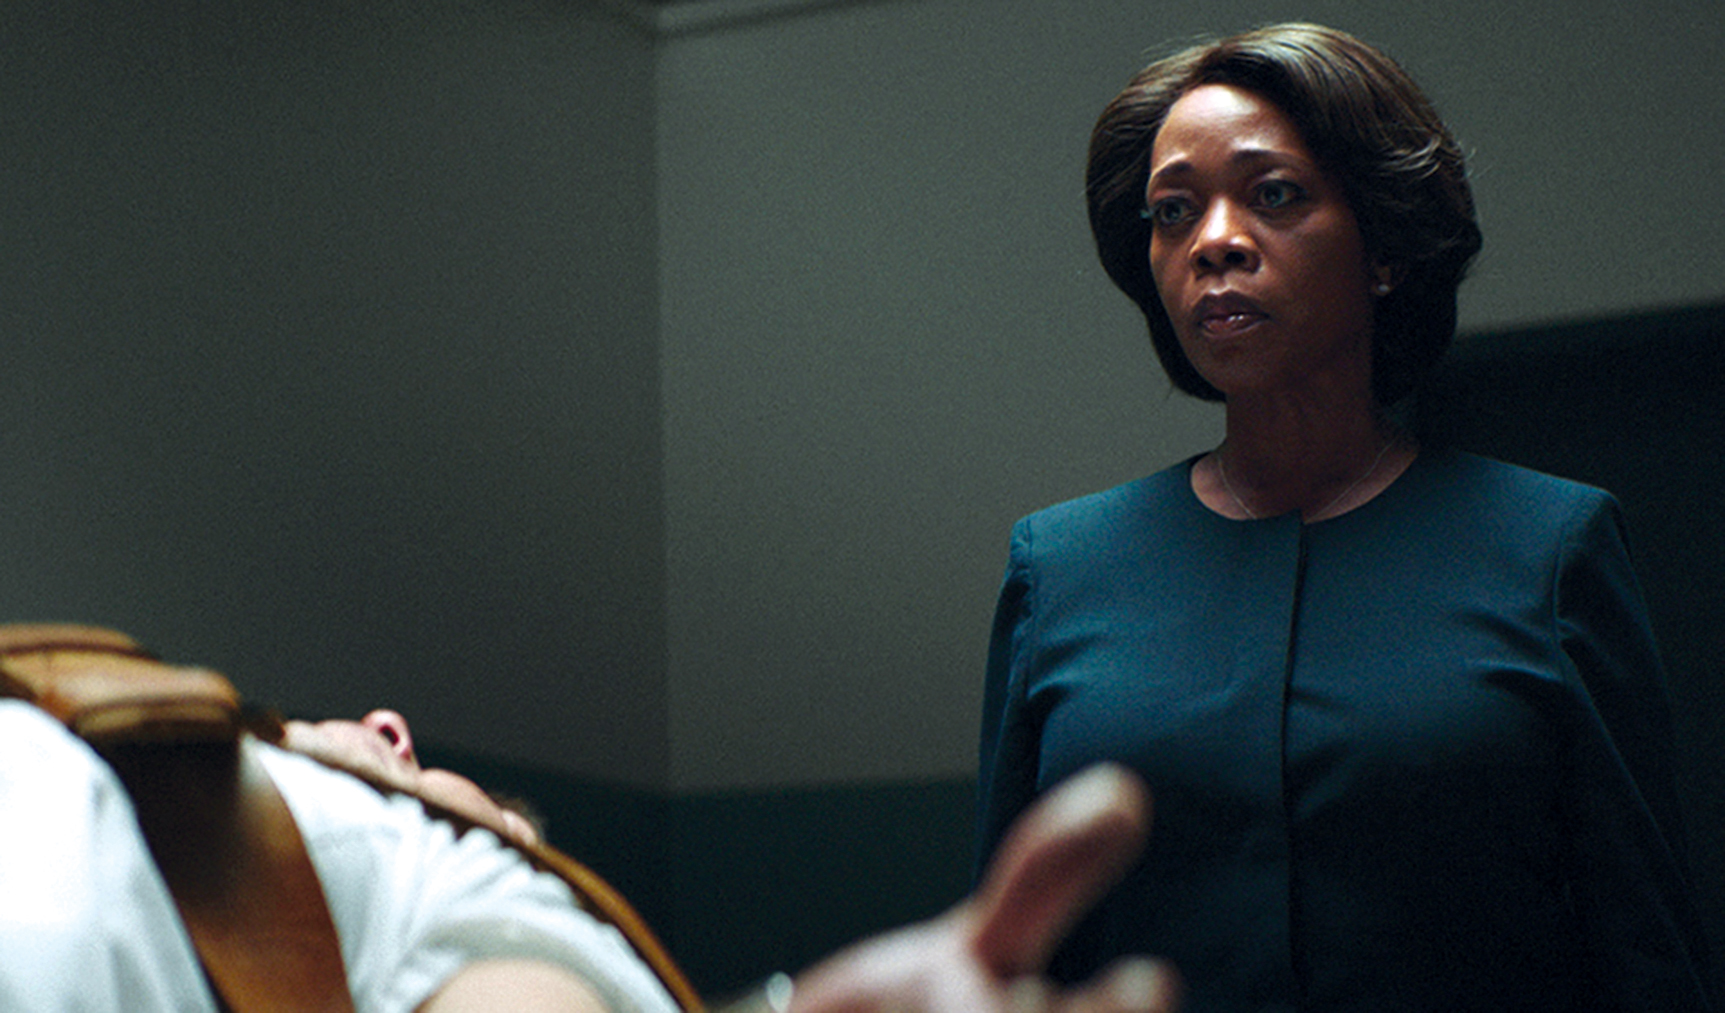 <p>Winner of the US Dramatic Grand Jury Prize at Sundance, &quot;Clemency&quot; is a dark and meticulous prison drama about the cumbersome emotional weight placed on a death row warden.  Alfre Woodard gives a tour-de-force performance that is arguably the best of her career. It may not be the most upbeat watch the festival has to offer, but it is an acutely distressing look at capital punishment and raw character study of a woman stuck between a rock and a very lonely place. (Image: SIFF)</p>